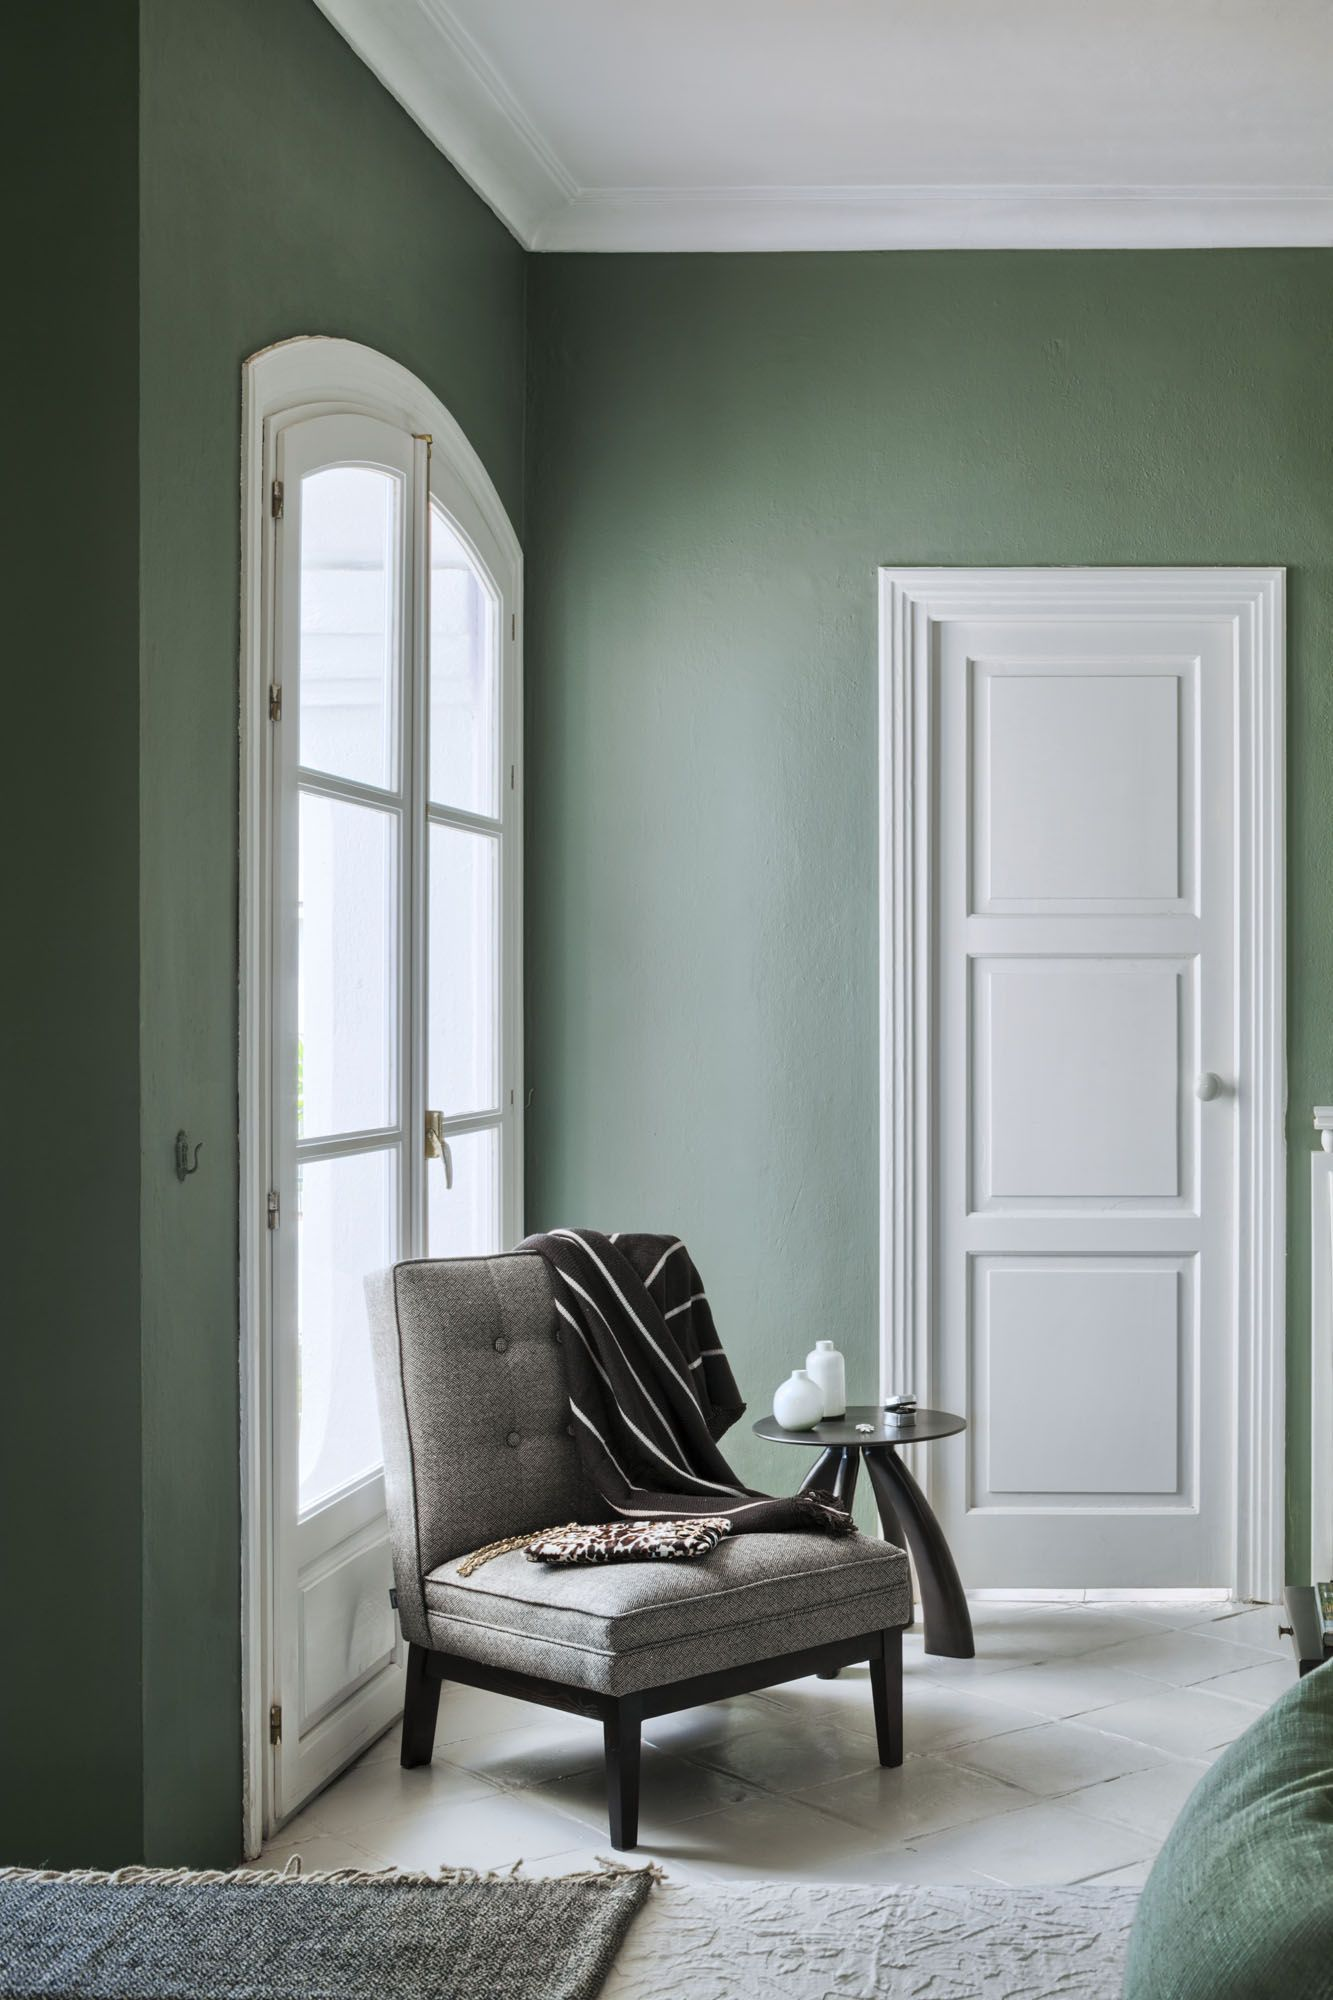 Farrow And Ball Green Smoke Living Room Den A Weathered Shade Of Smoky Green Channels The Traditional Aesth Living Room Green Sage Green Bedroom Green Rooms